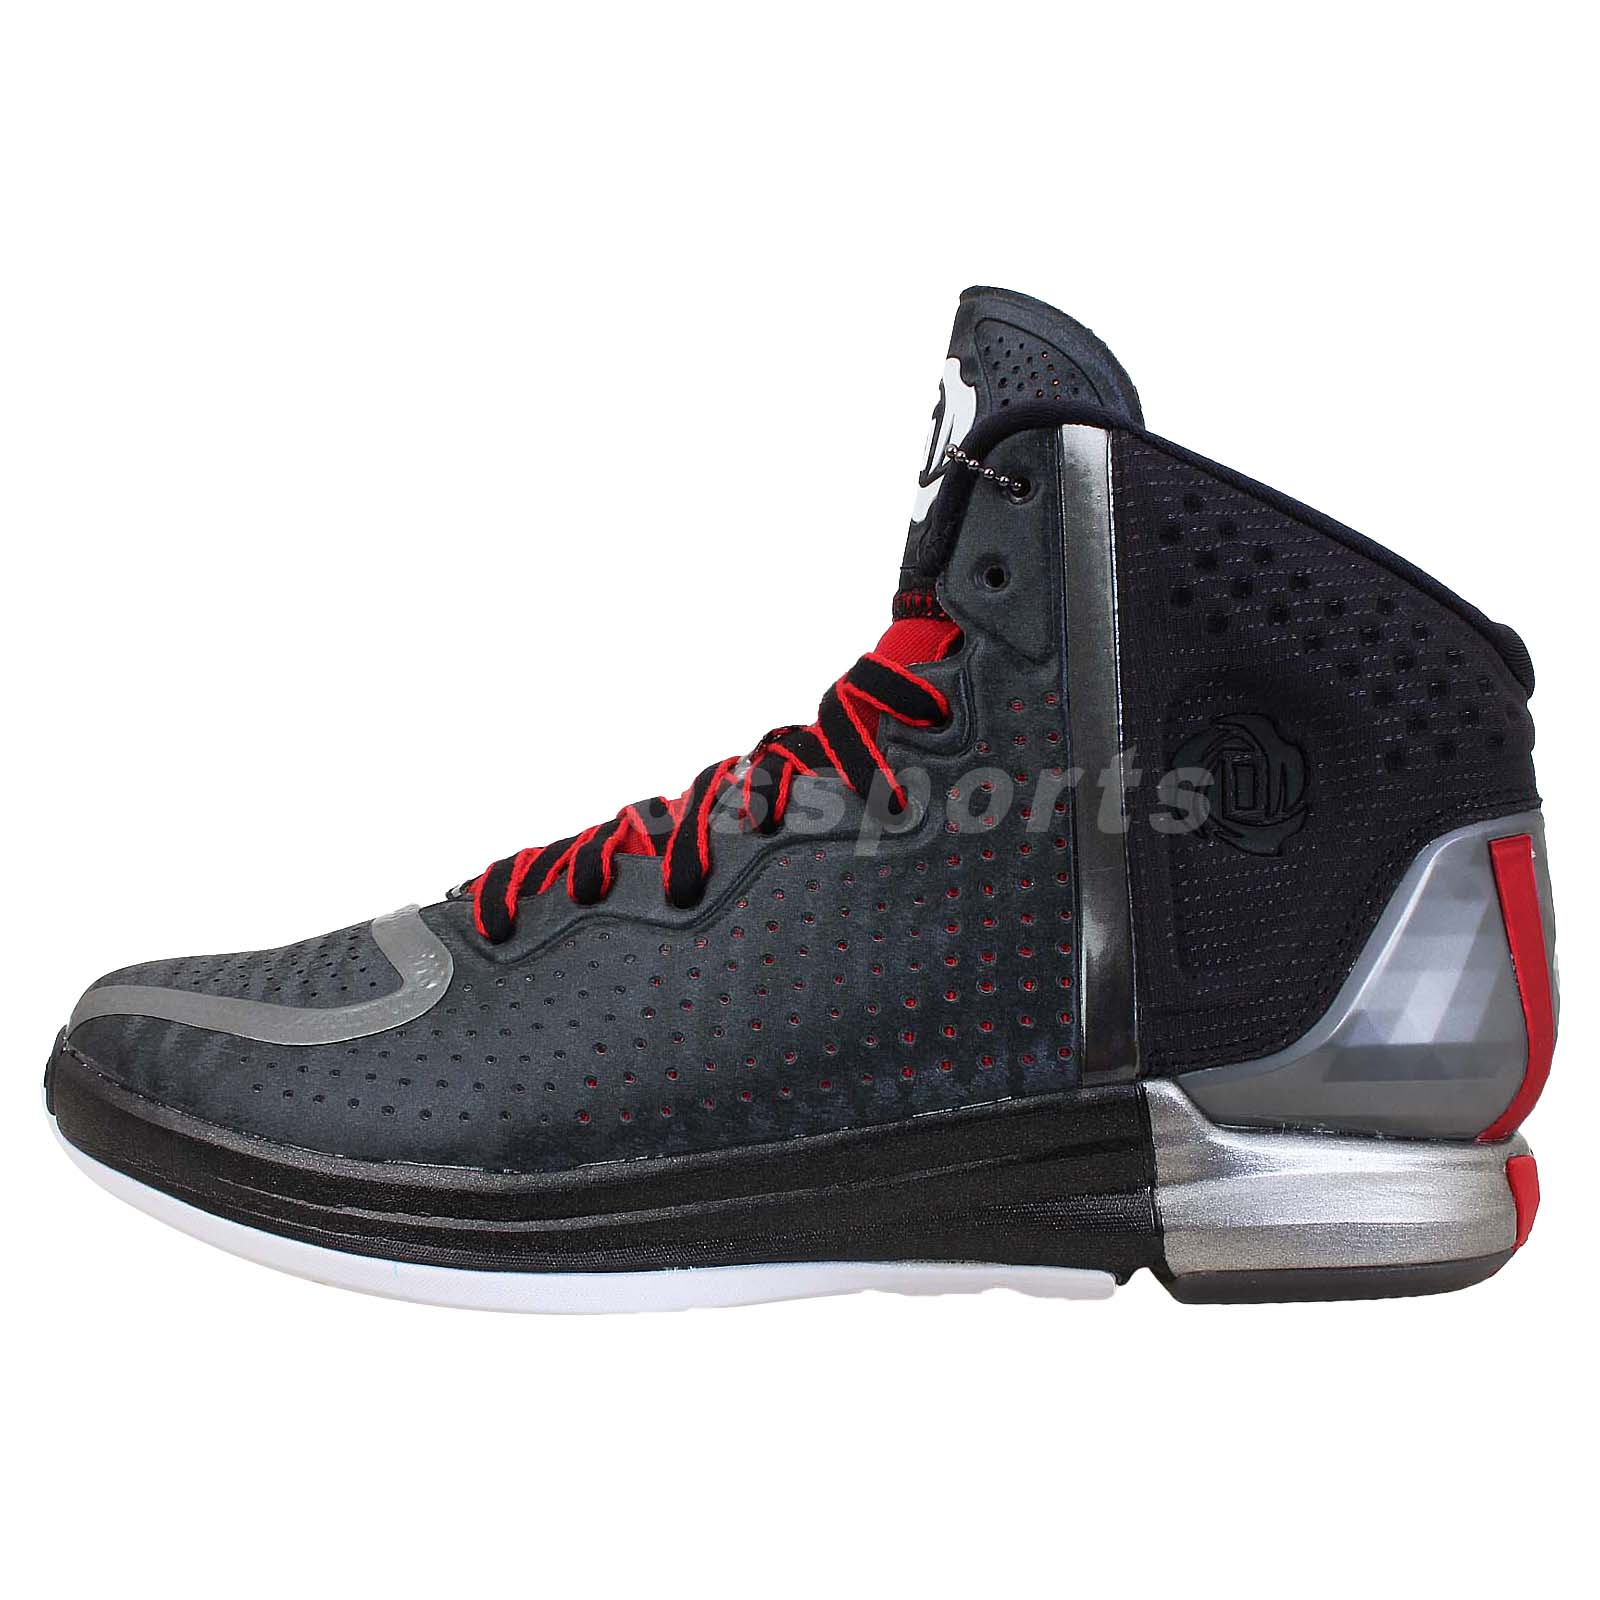 Adidas D Rose 4 Derrick Chicago Bulls 2013 Mens Basketball ...